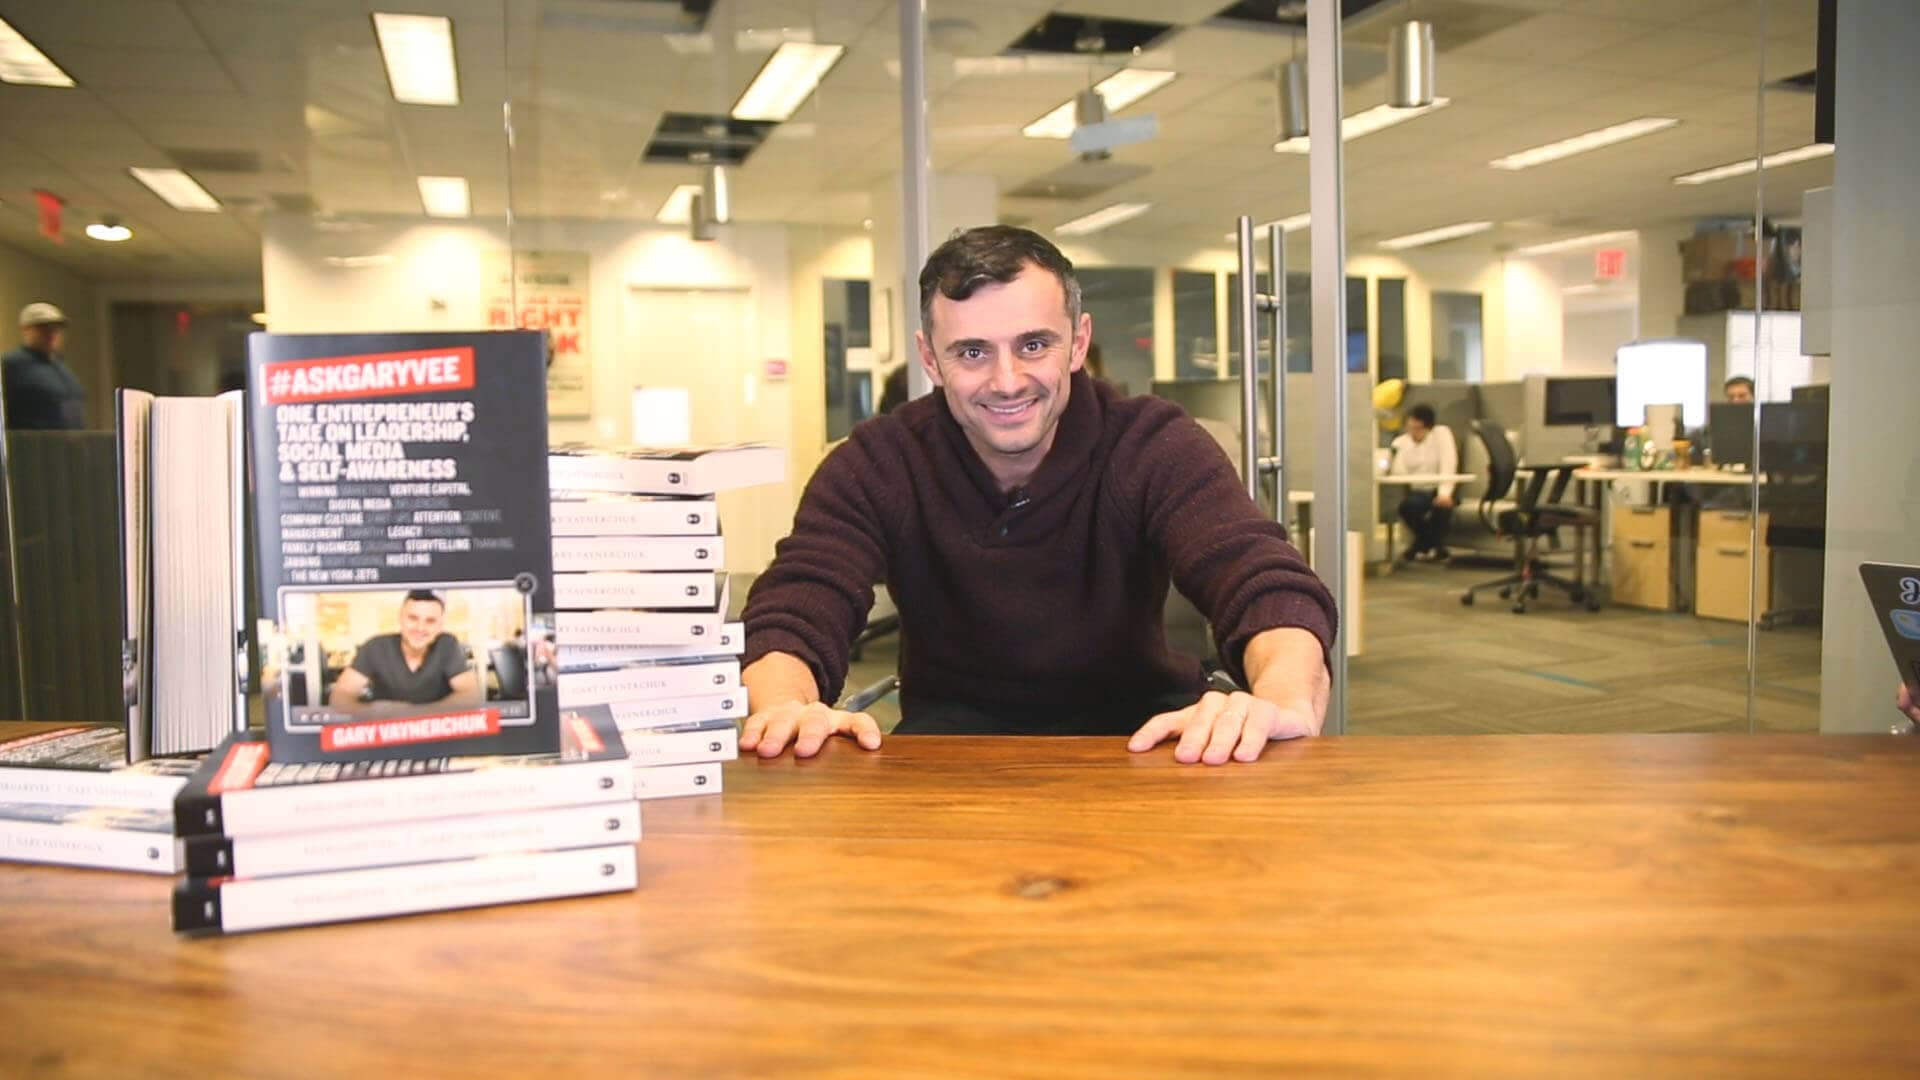 The_#AskGaryVee_Show_EP181